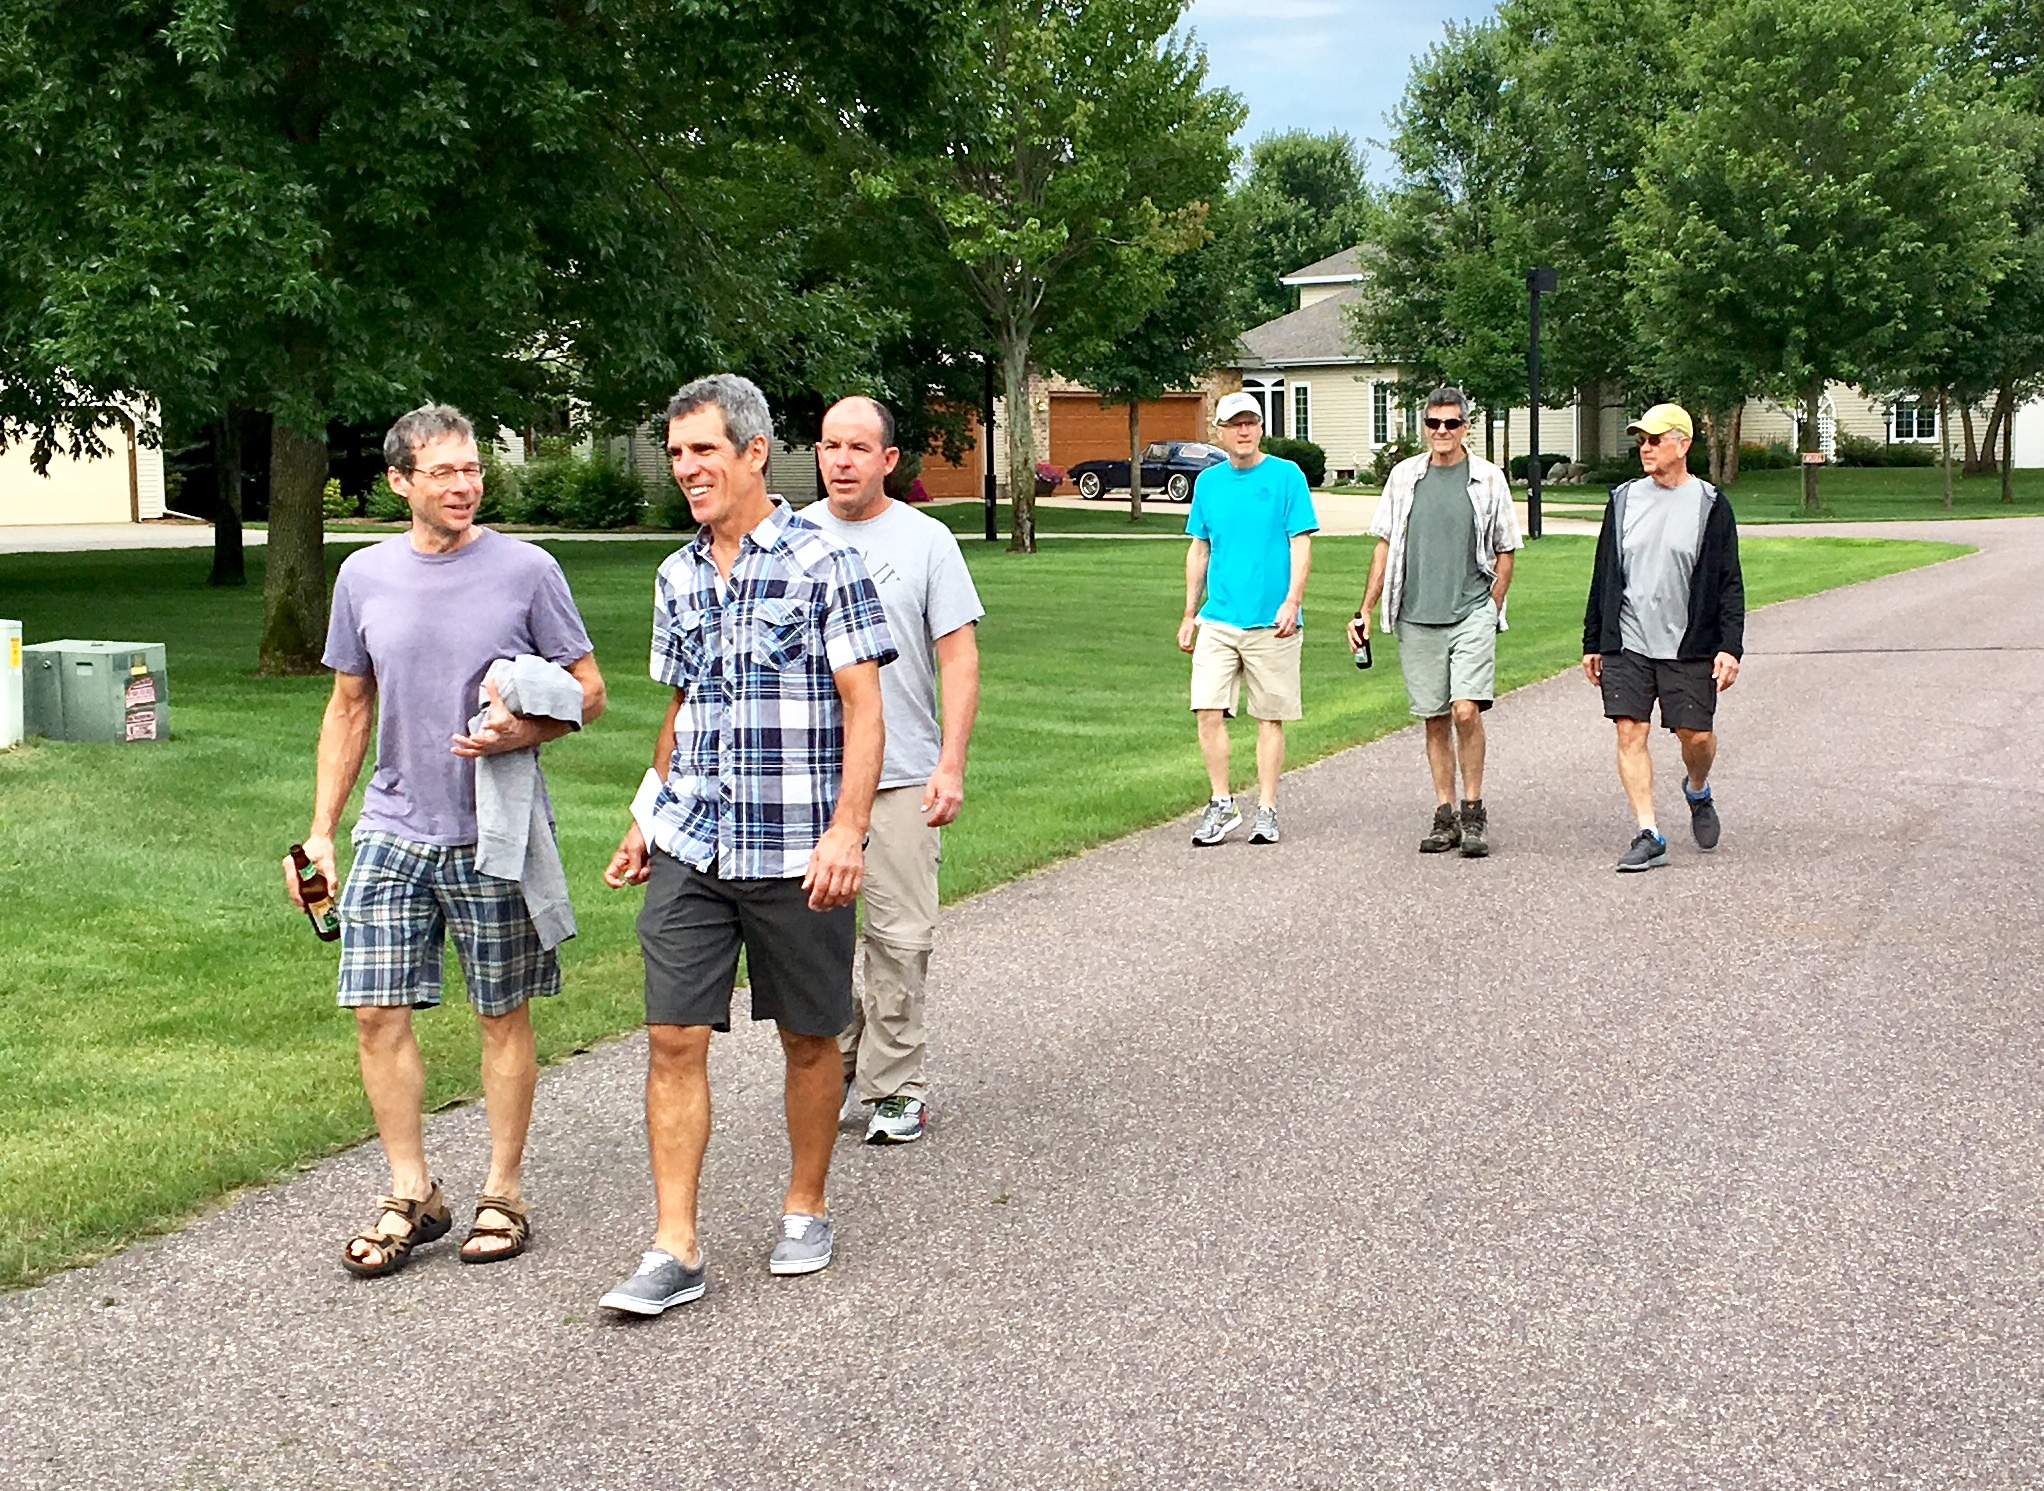 - Walking to dinner at Jim's (second from left) summer home on Castle Rock Lake. I'm not shown, as I took the photo.